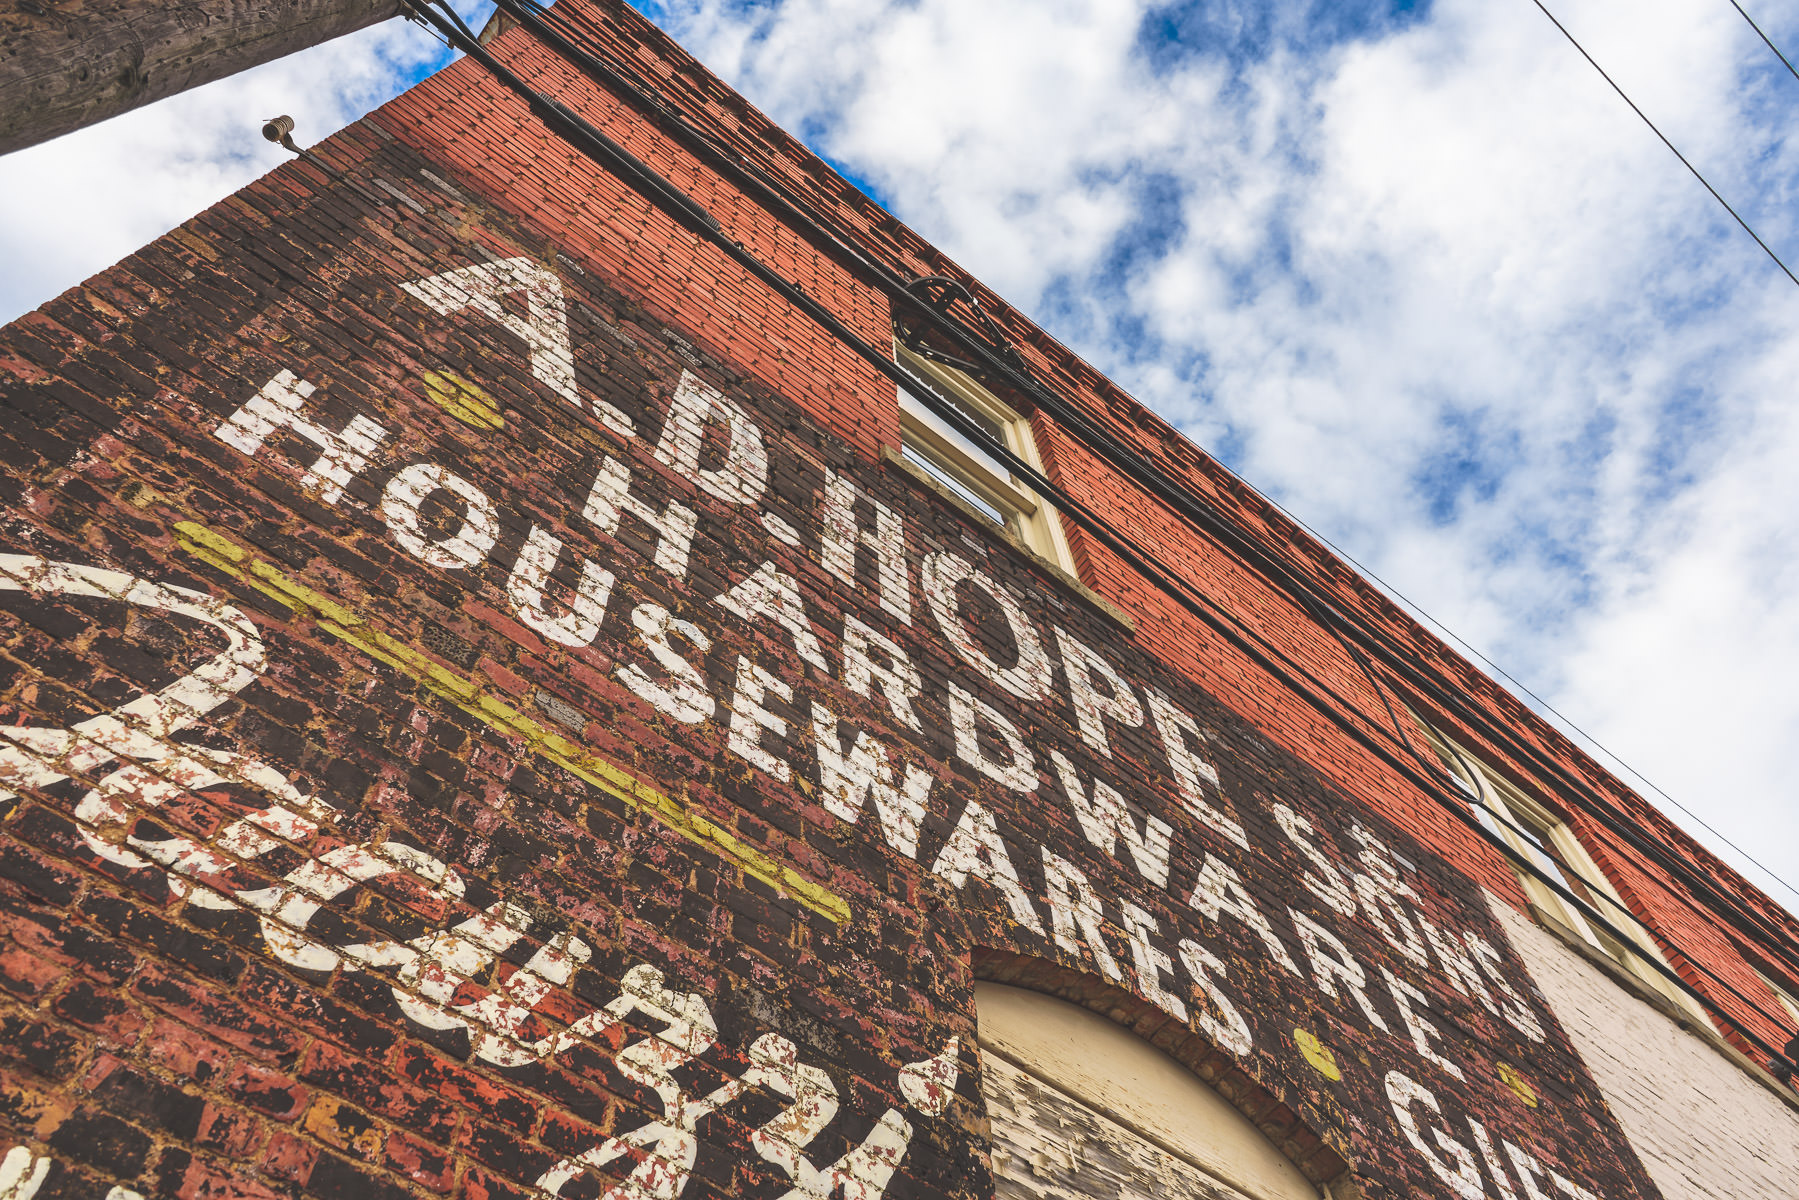 An old faded sign painted on the side of a building in Downtown McKinney, Texas.